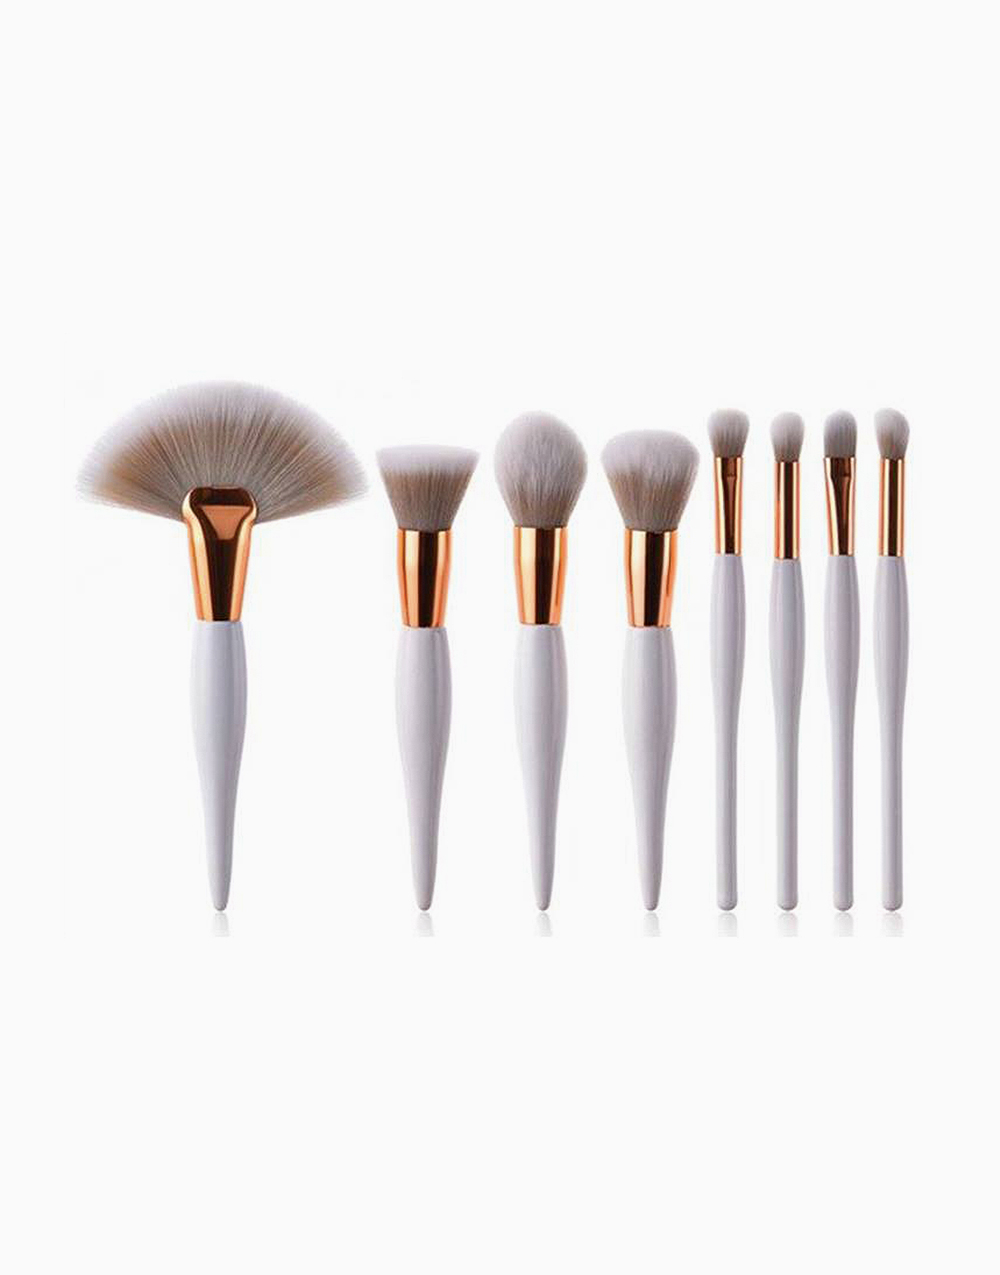 8 Pieces White On Point Makeup Brush Set by Brush Works